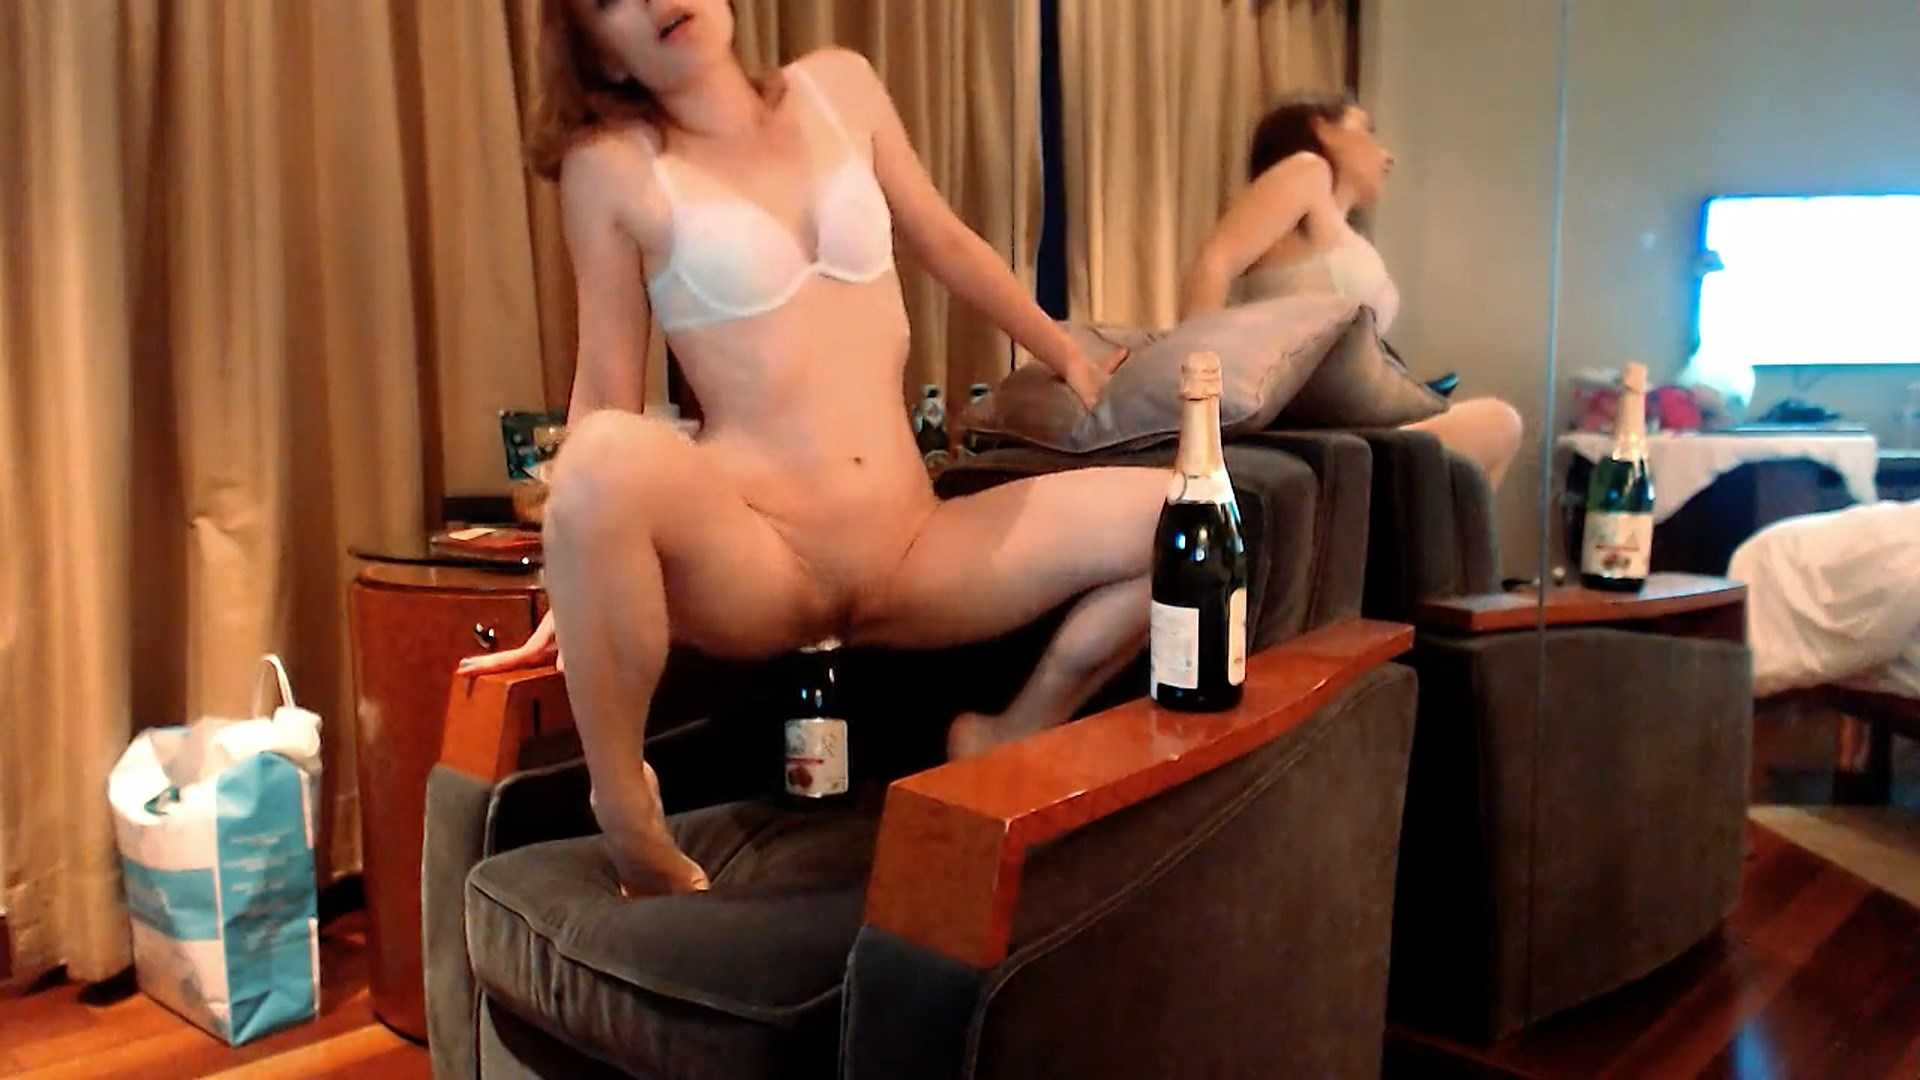 Double bottle fuck – LittleMissKinky | Full HD 1080p | April 27, 2017